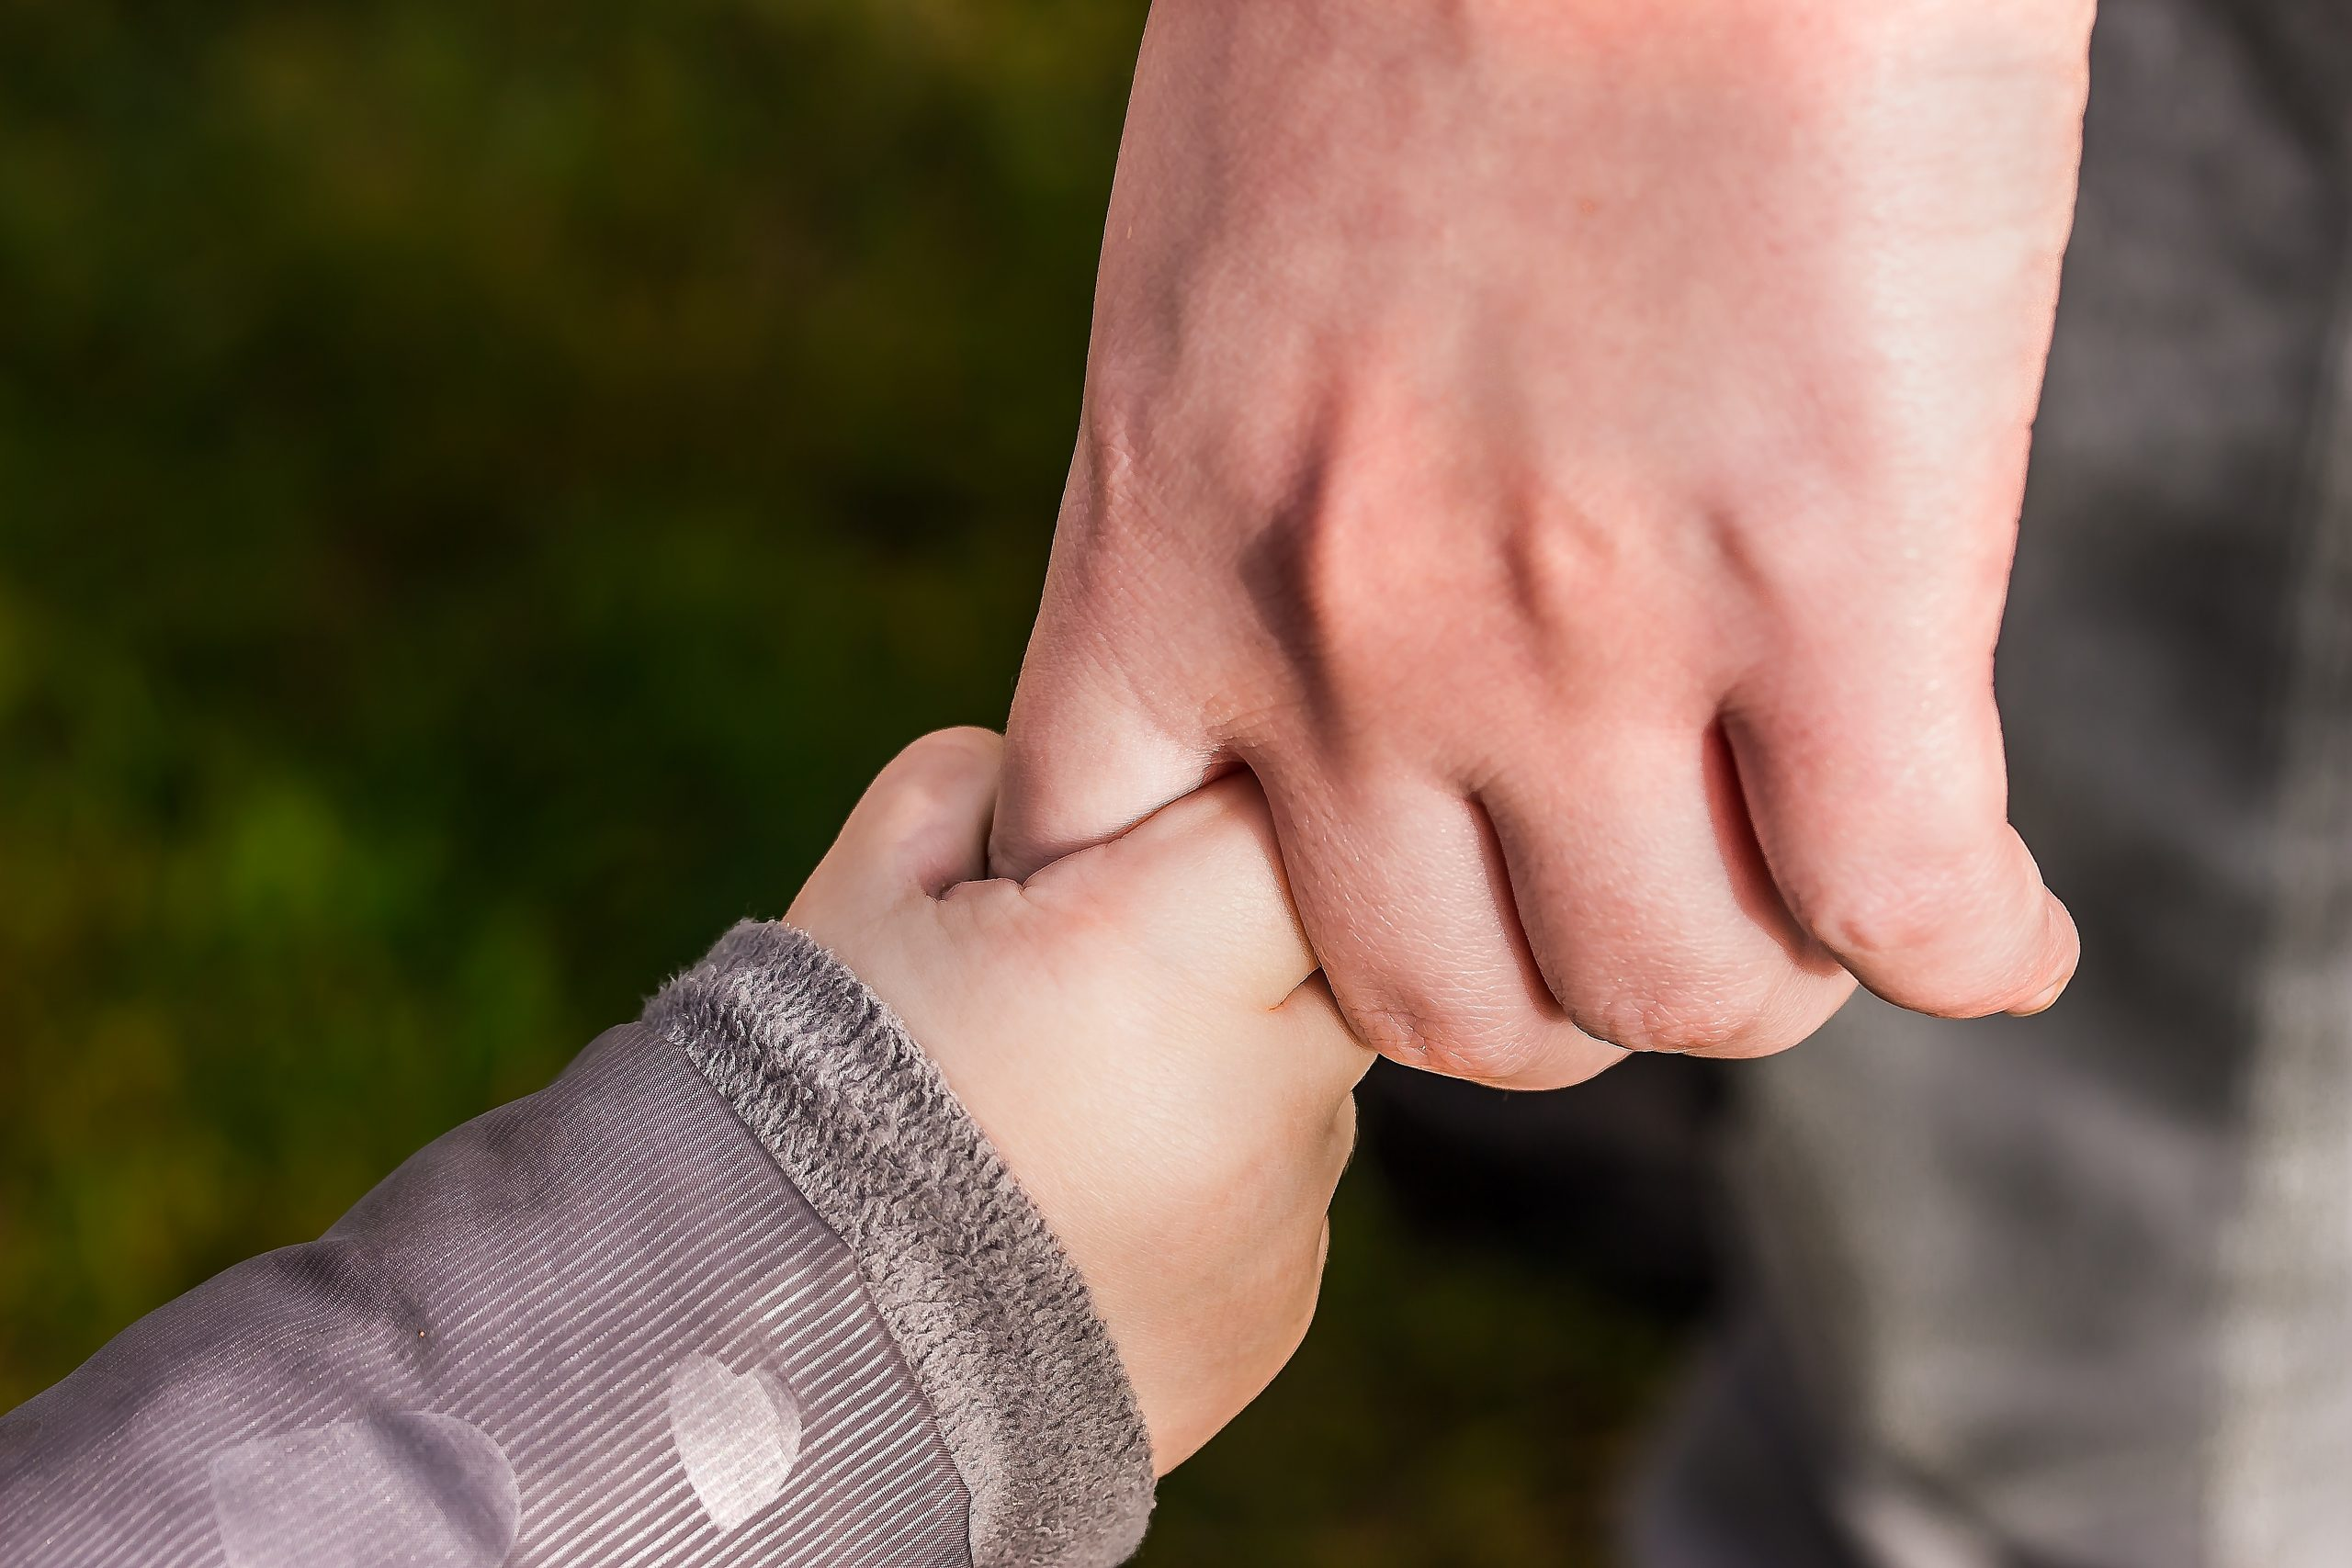 Government Launch £2.7m Fund to Reduce Parental Conflict